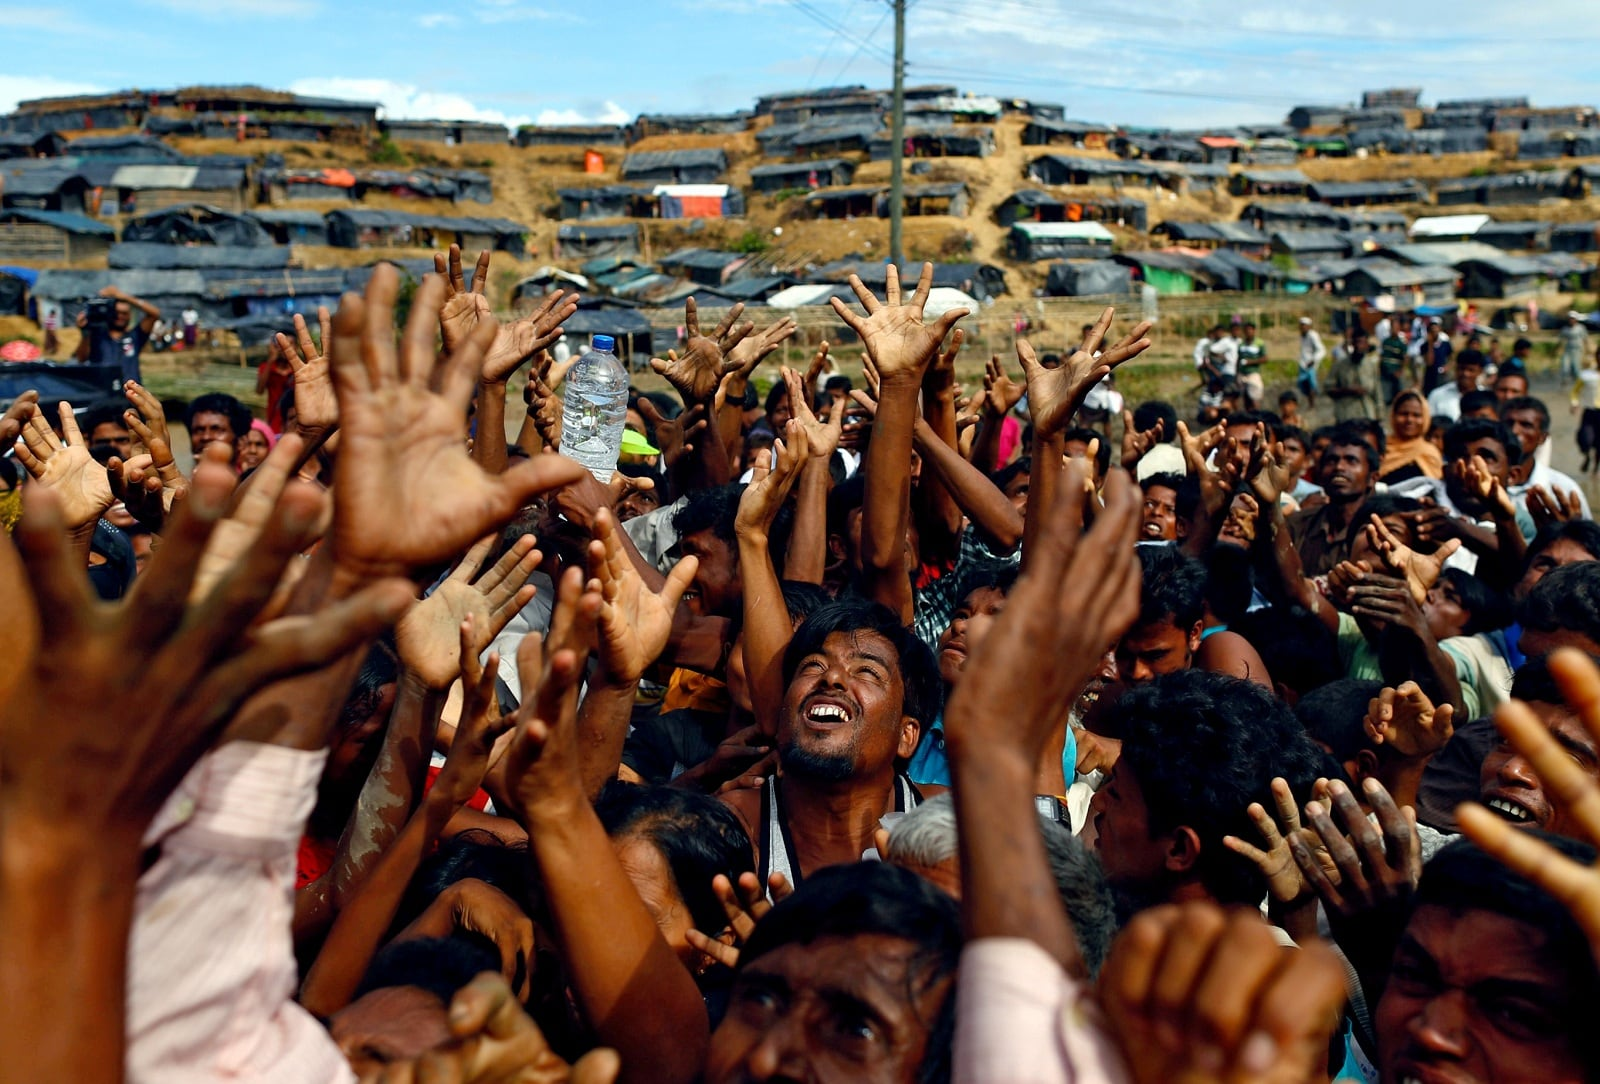 Rohingya refugees stretch their hands to receive aid distributed by local organisations at Balukhali makeshift refugee camp in Cox's Bazar, Bangladesh, September 14, 2017. REUTERS/Danish Siddiqui/File Photo